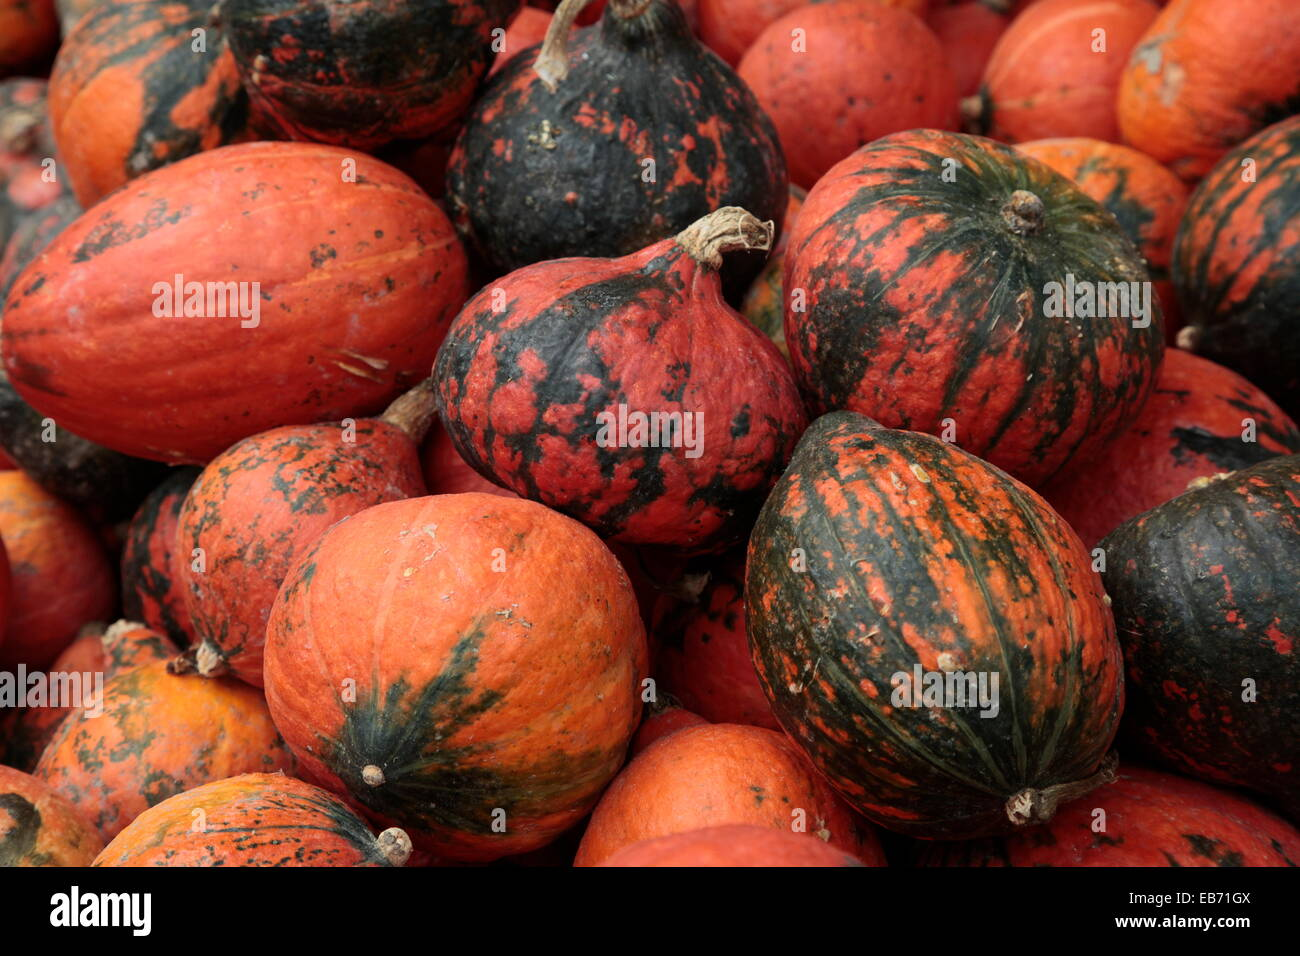 Assortment of Cucurbitaceae various types of squashes, pumpkin, and gourds - Stock Image